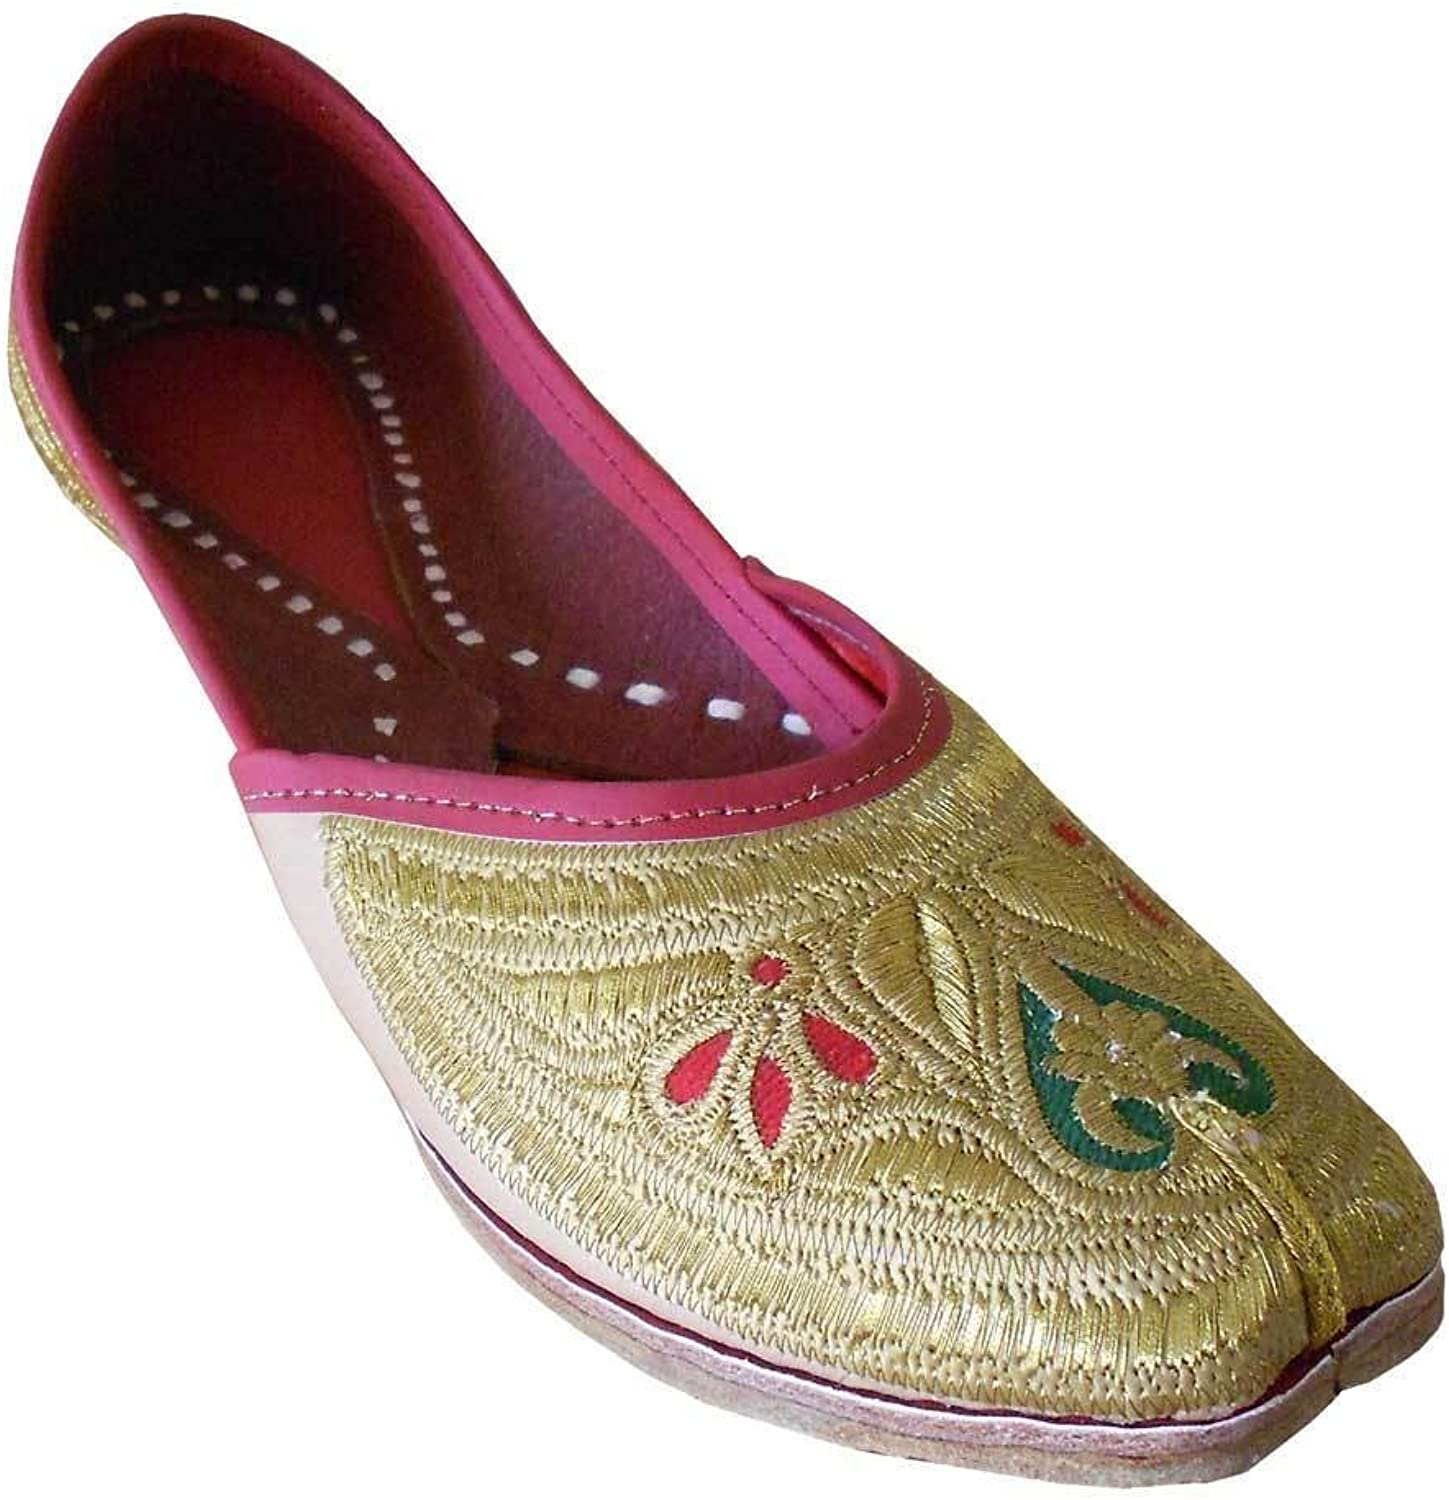 Kalra Creations Women's Traditonal Indian Faux Leather with Embroidery Party shoes